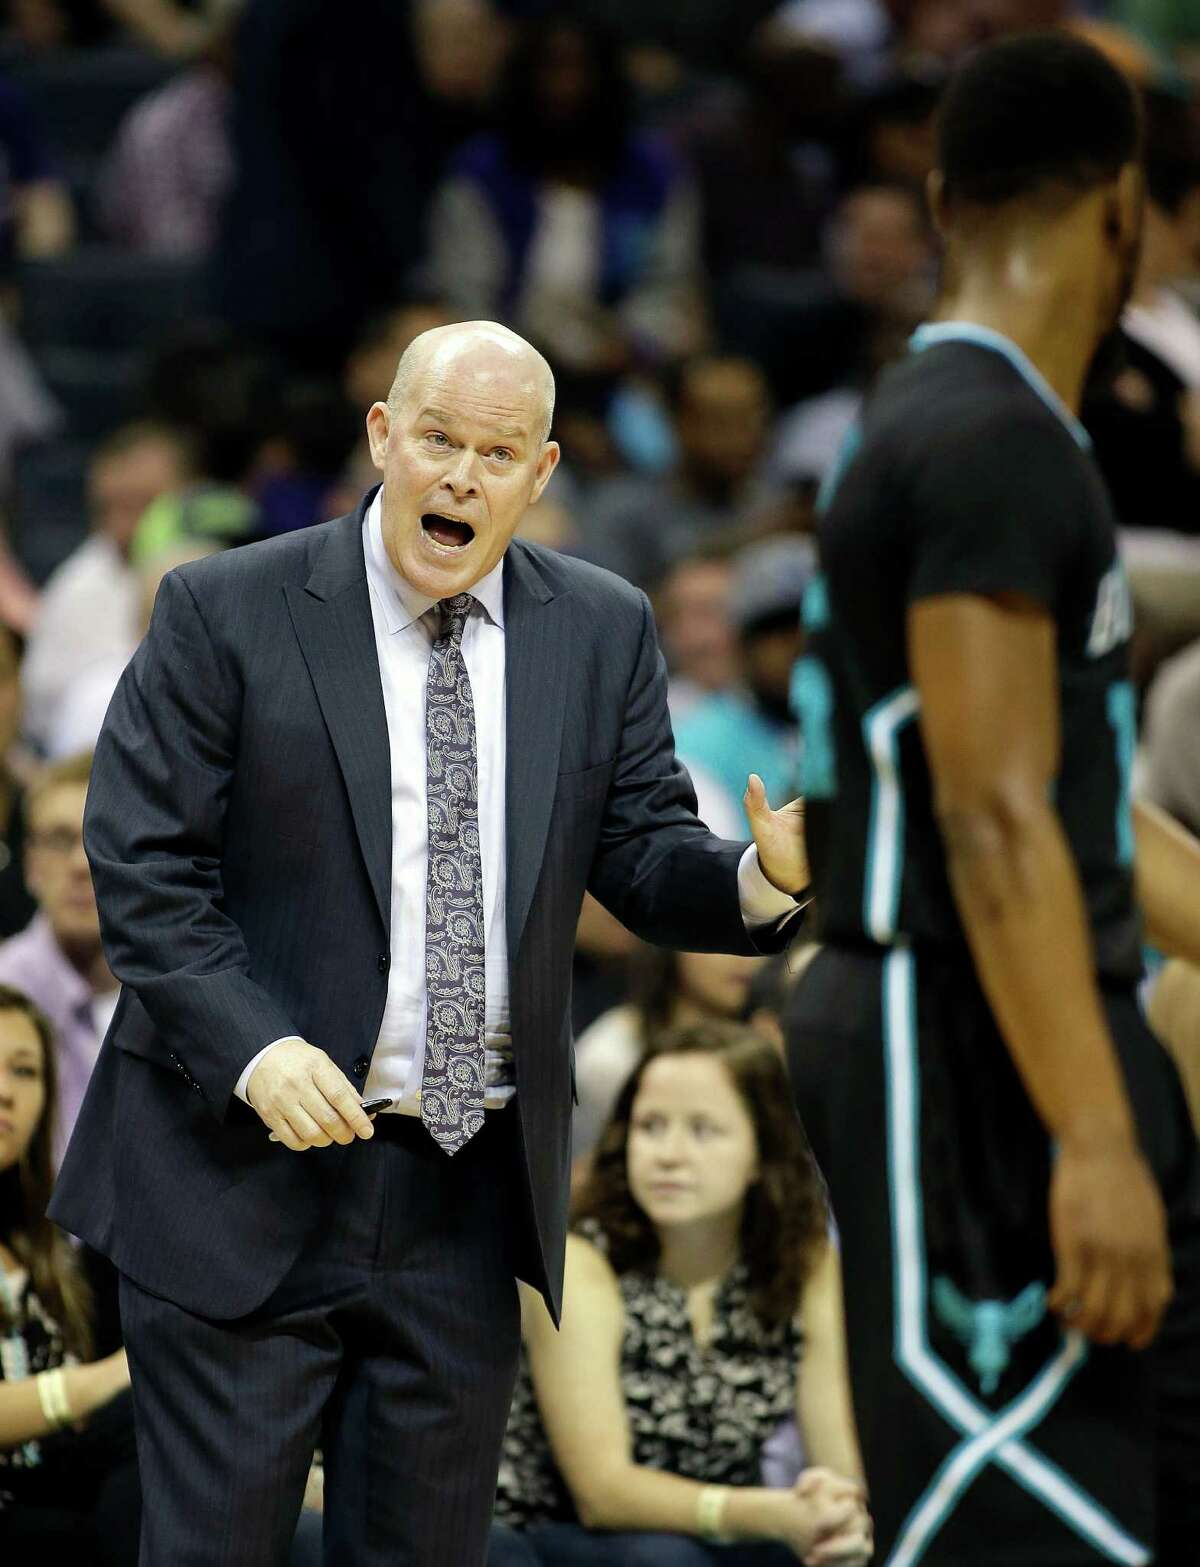 Charlotte Hornet head coach Steve Clifford yells during the second half of an NBA basketball game against the Houston Rockets in Charlotte, N.C., Saturday, March 12, 2016. The Hornets won 125-109.